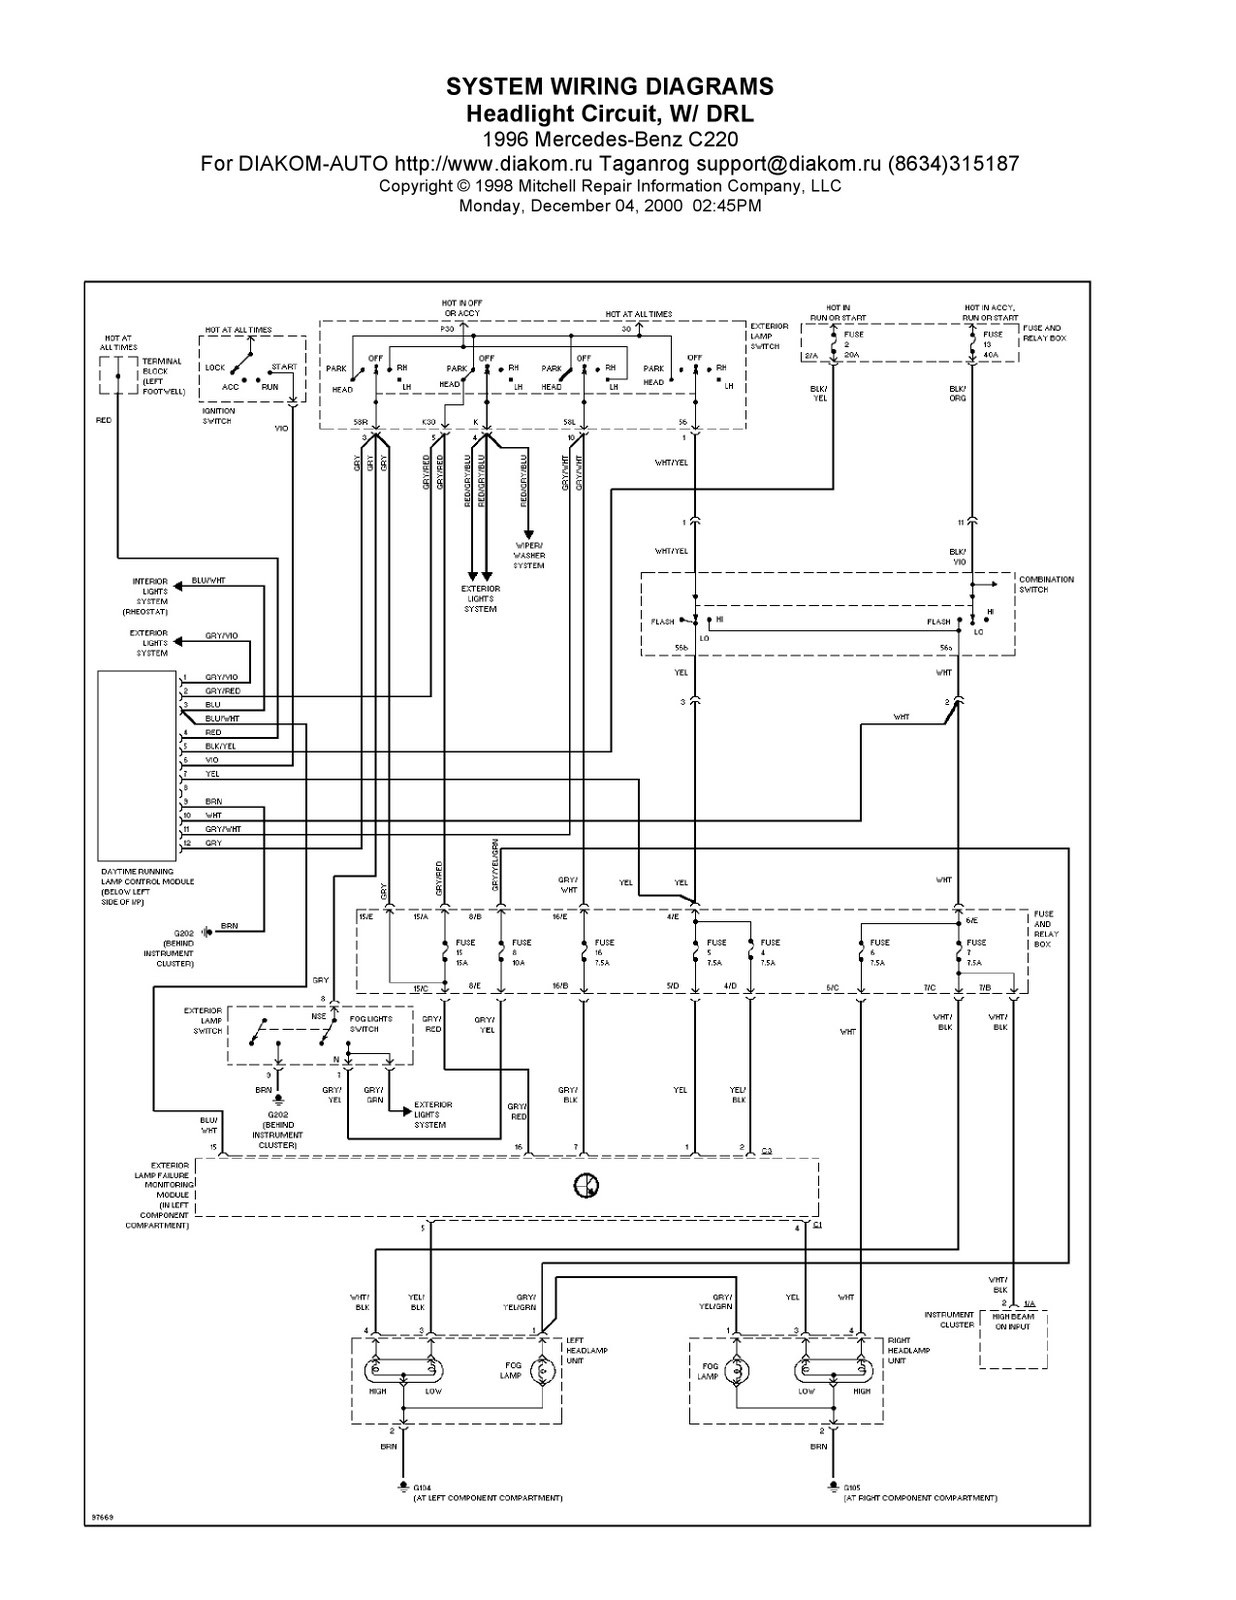 Wiring Diagram Mercedes Benz 300e Private Sharing About Colours 1974 Product Diagrams U2022 Rh Genesisventures Us